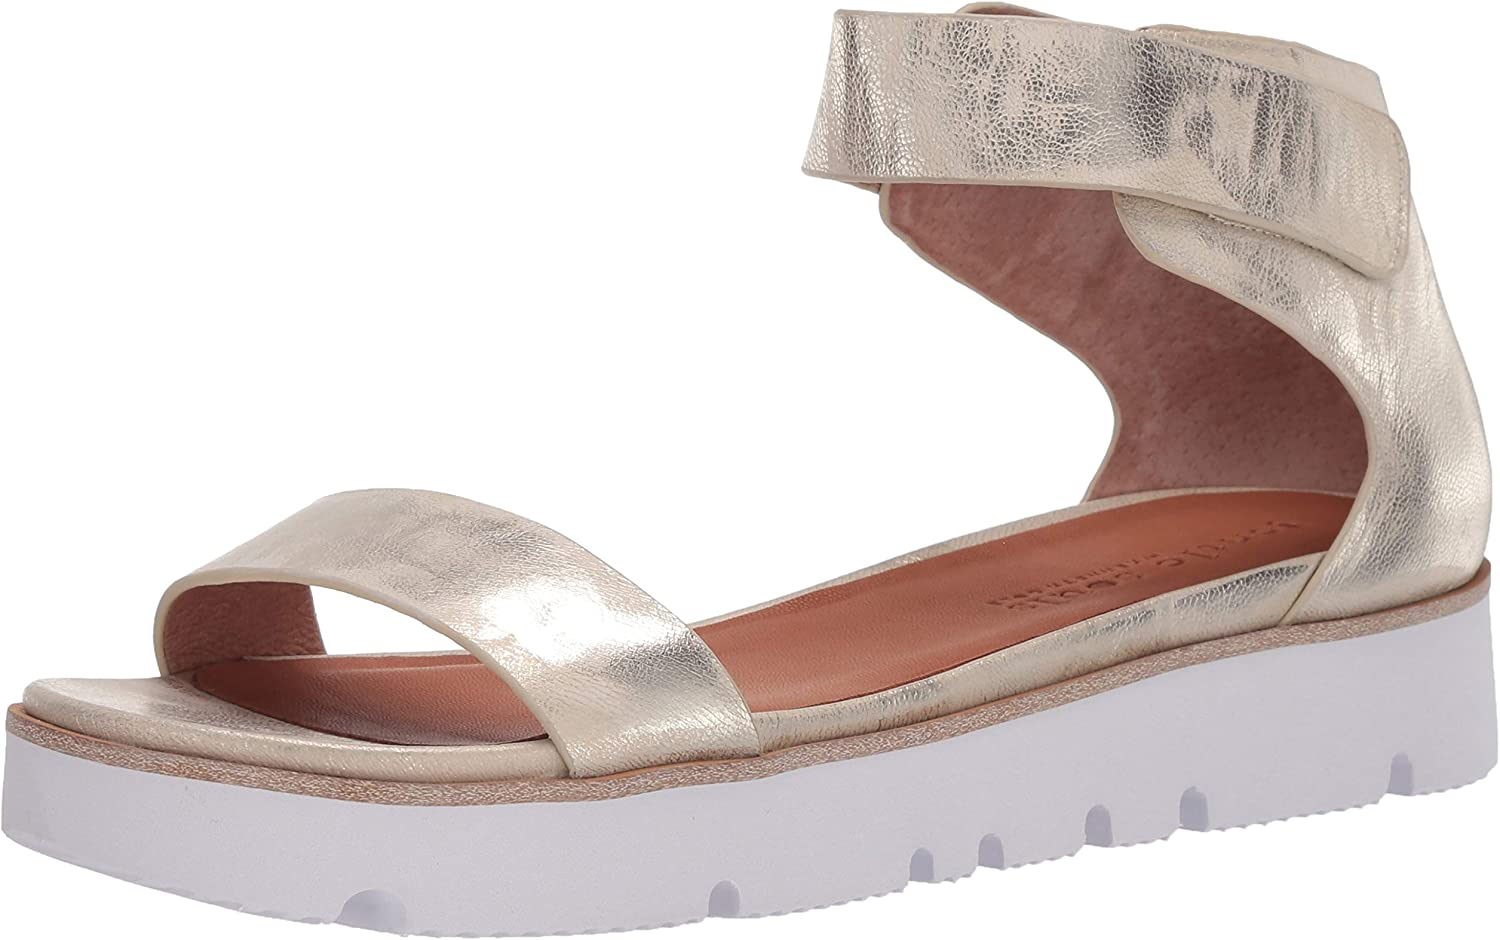 Gentle Souls by Kenneth Cole Strap Platform Easy Women's Lavern lowest price Online limited product